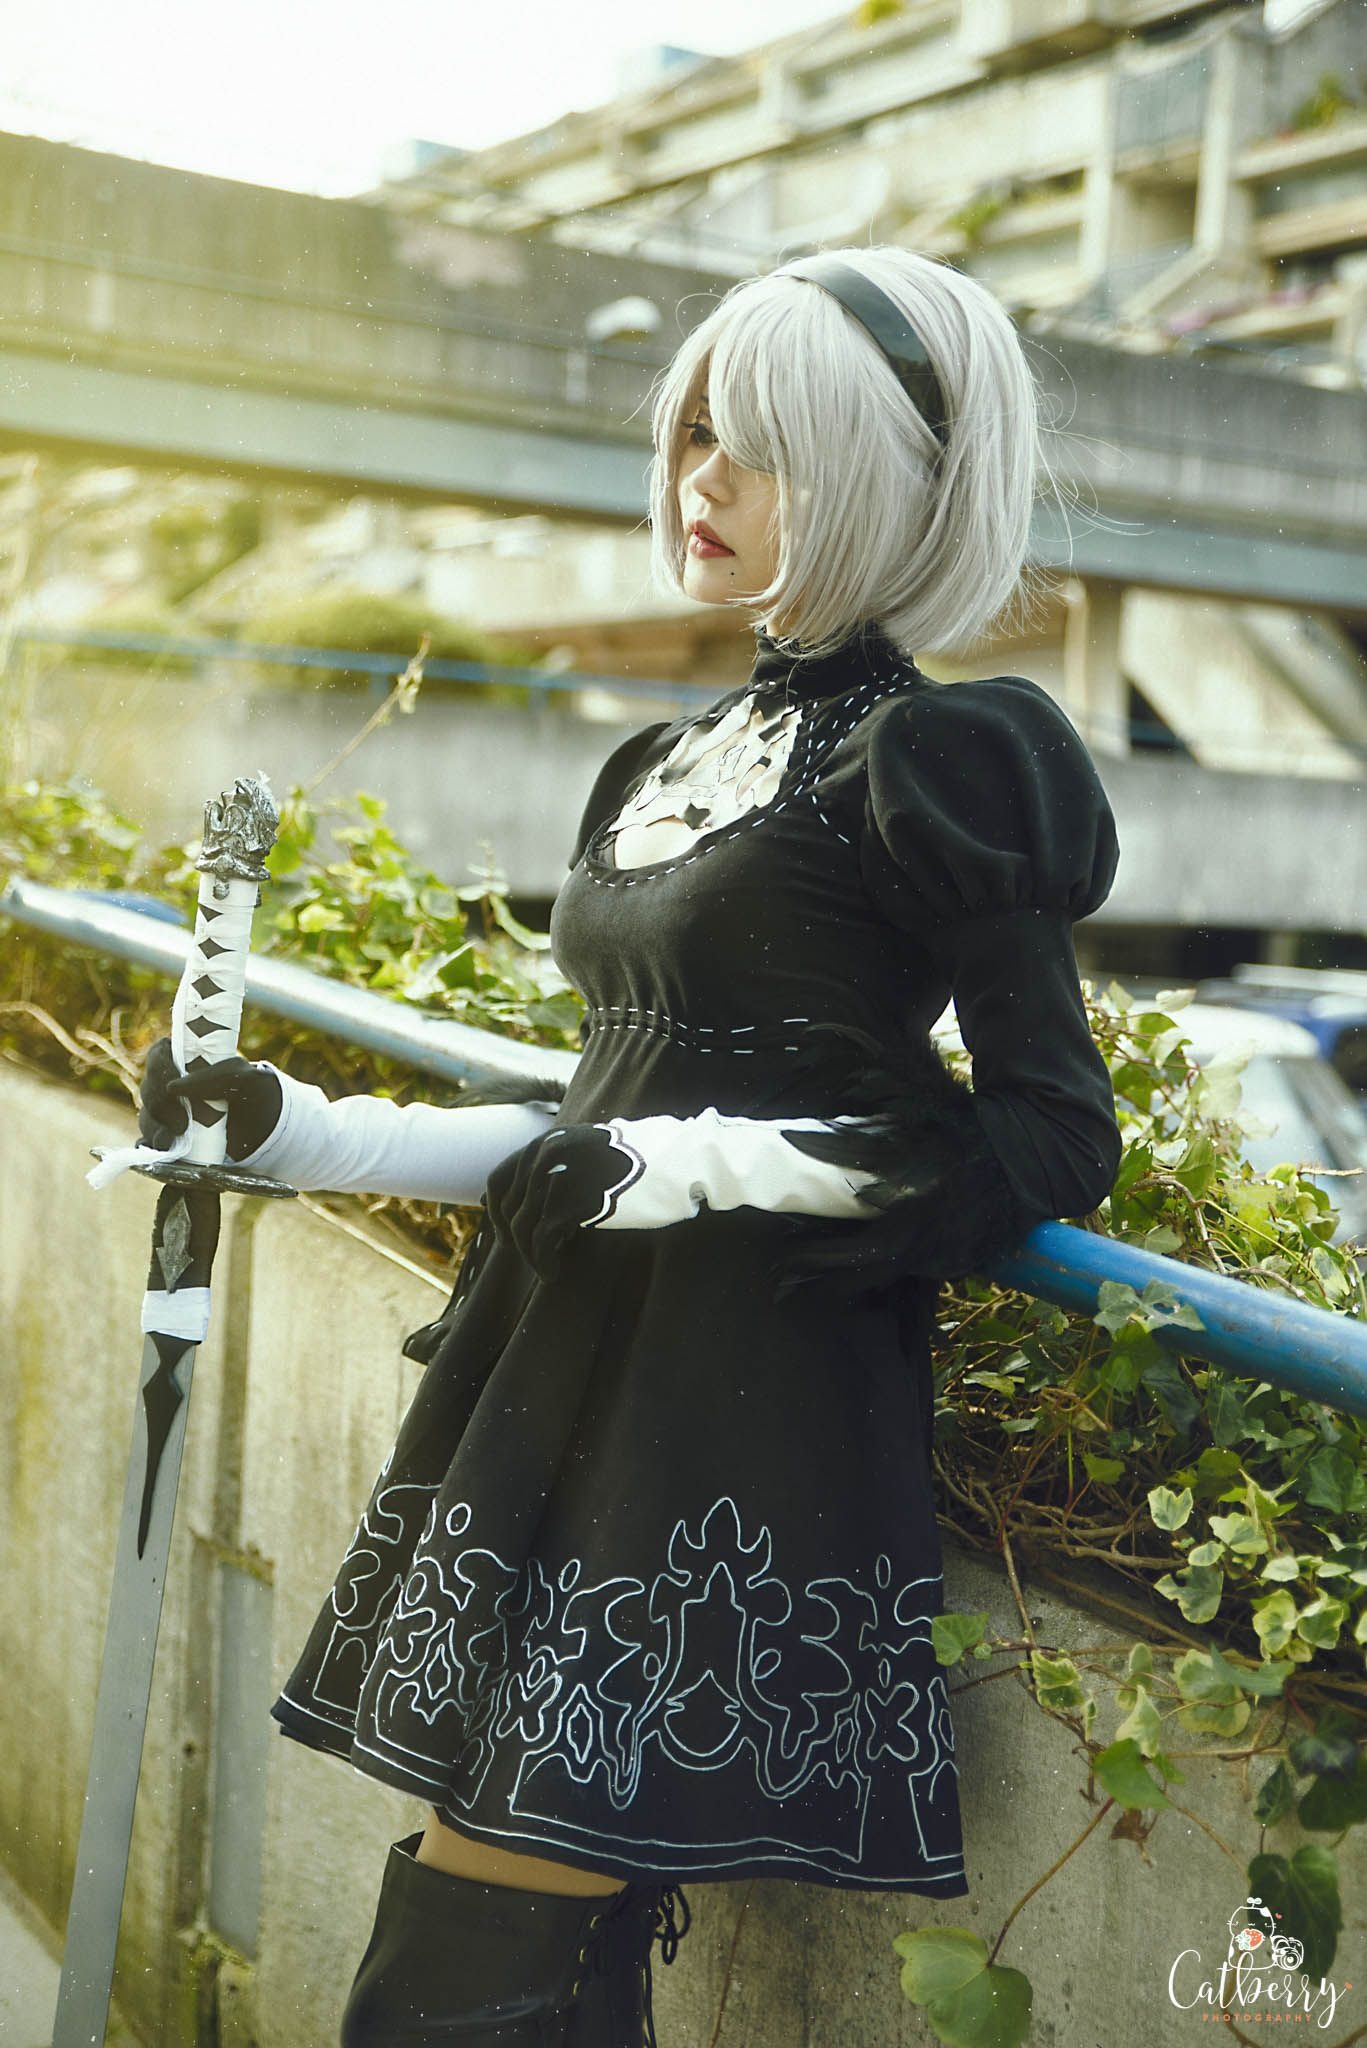 Best cosplay of 2b nier of history - 4 3